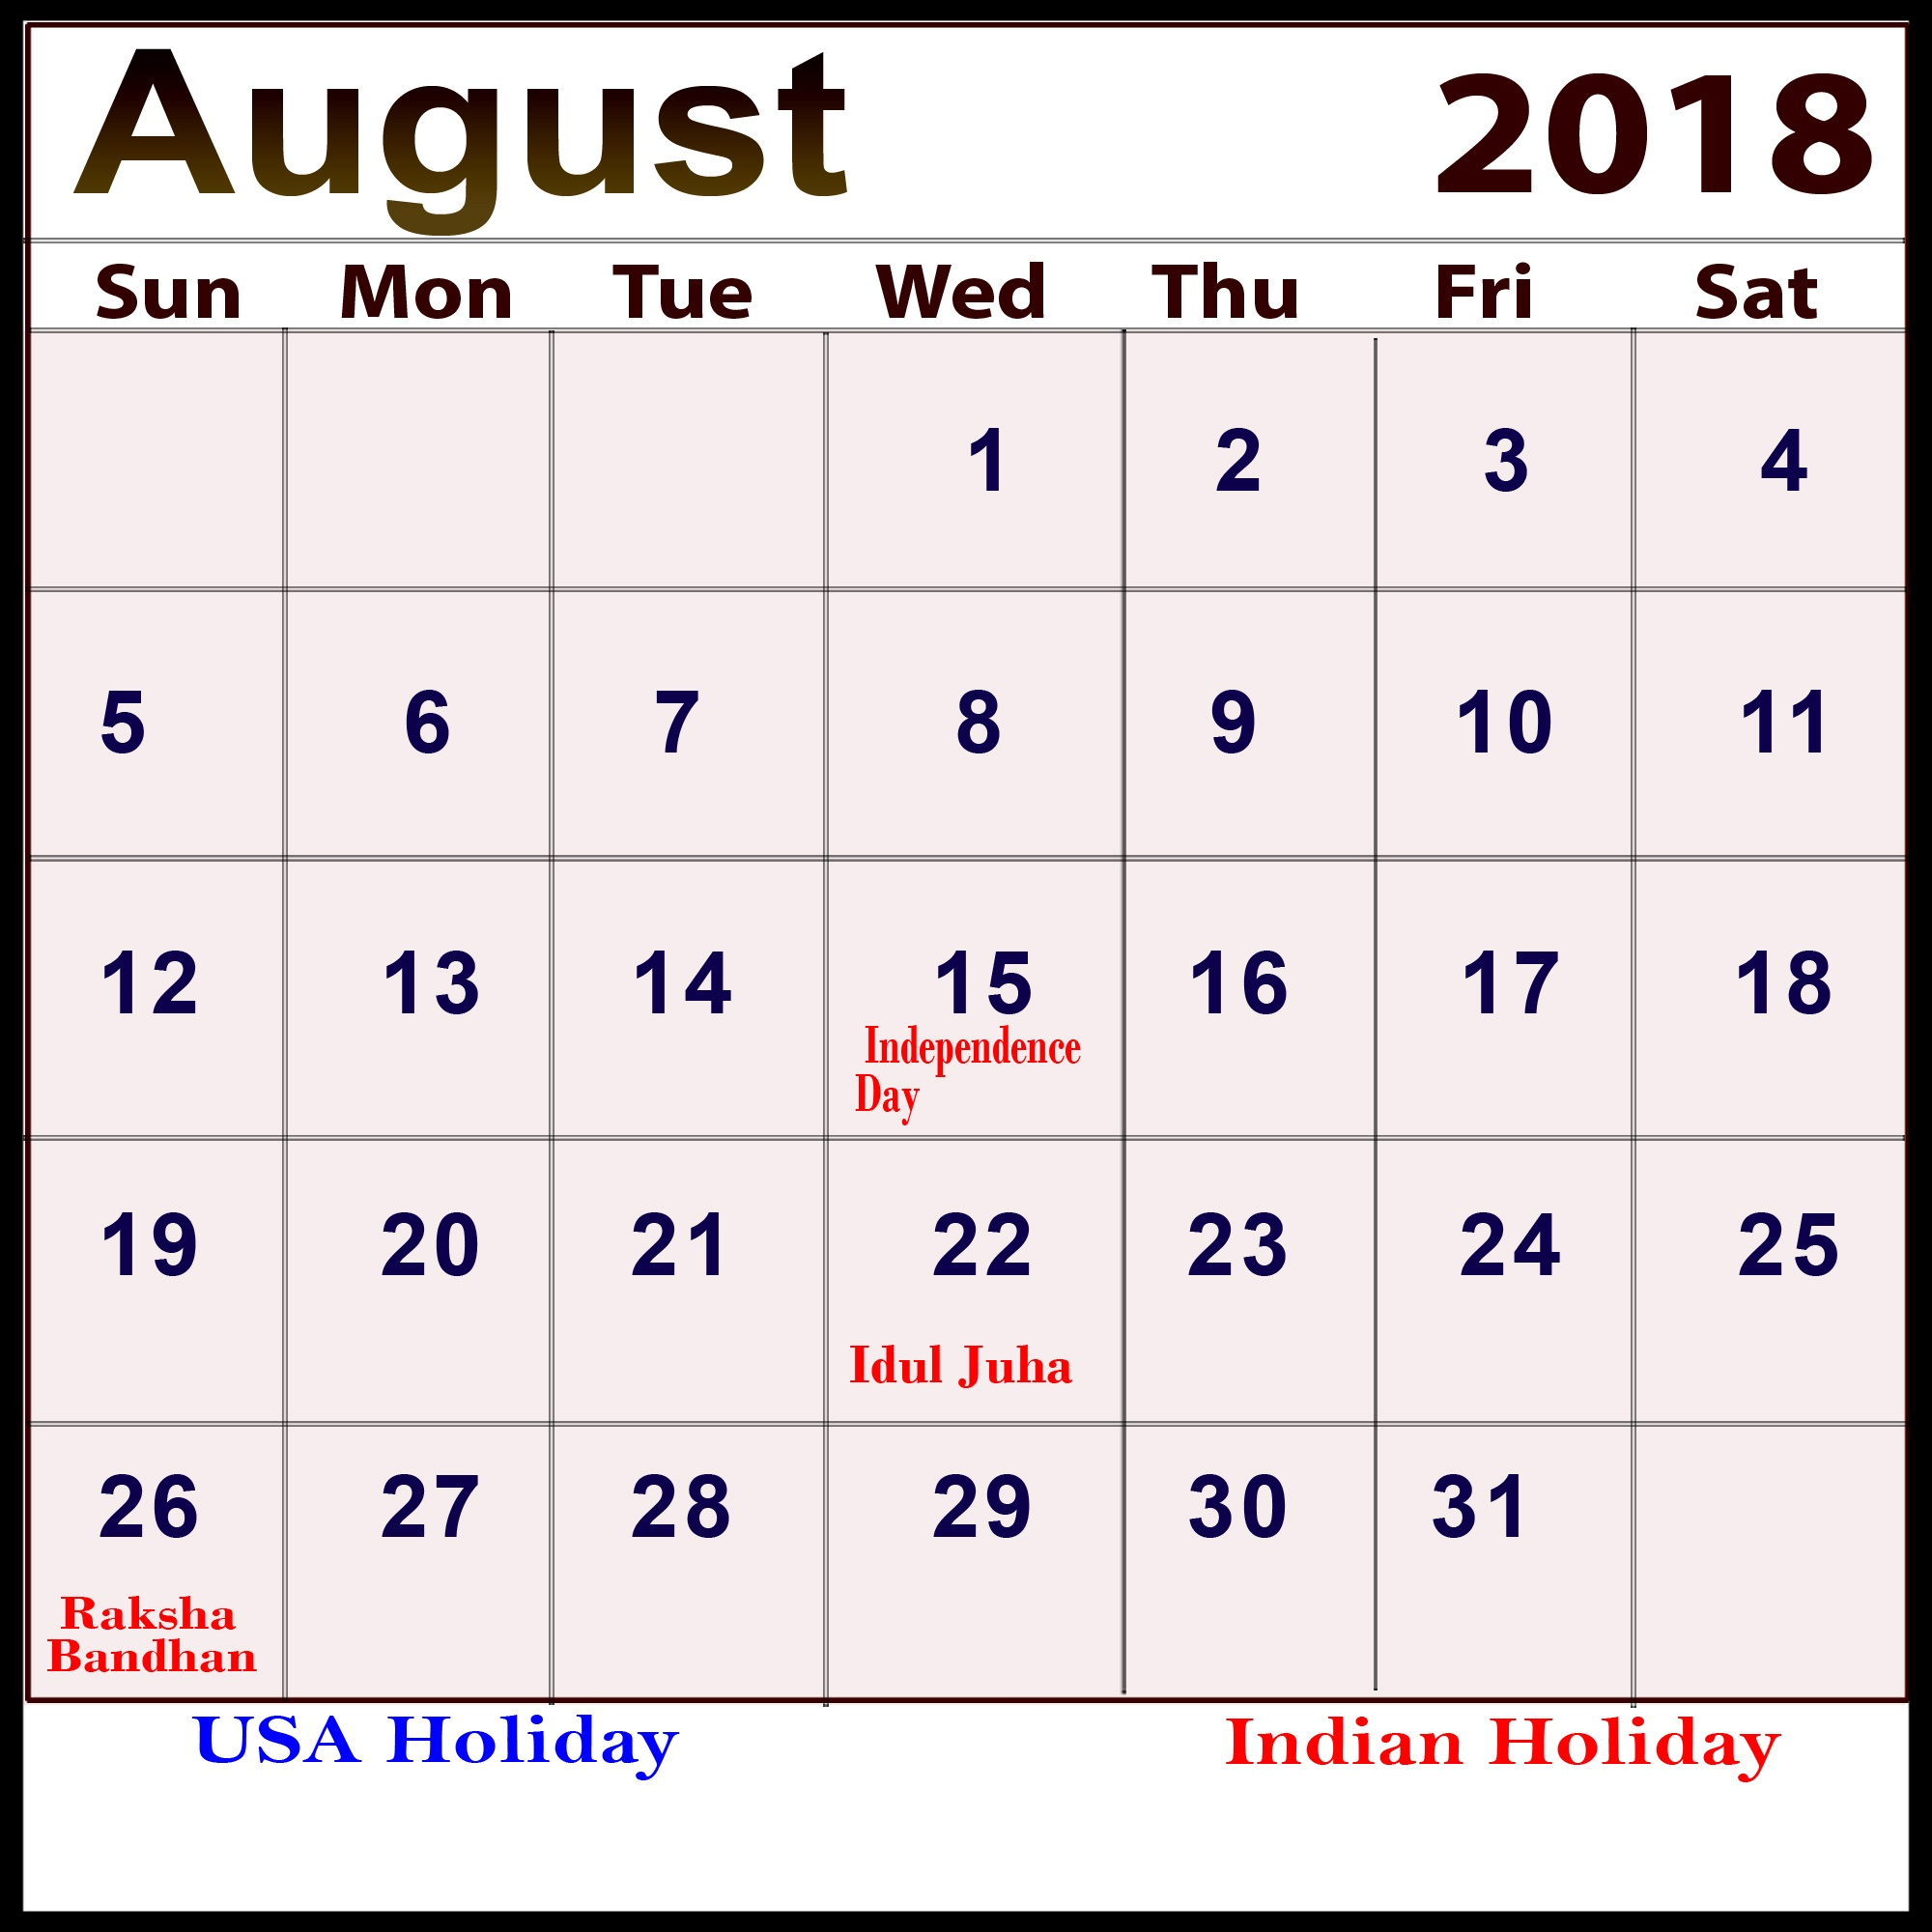 August 2018 Calendar with Holidays India